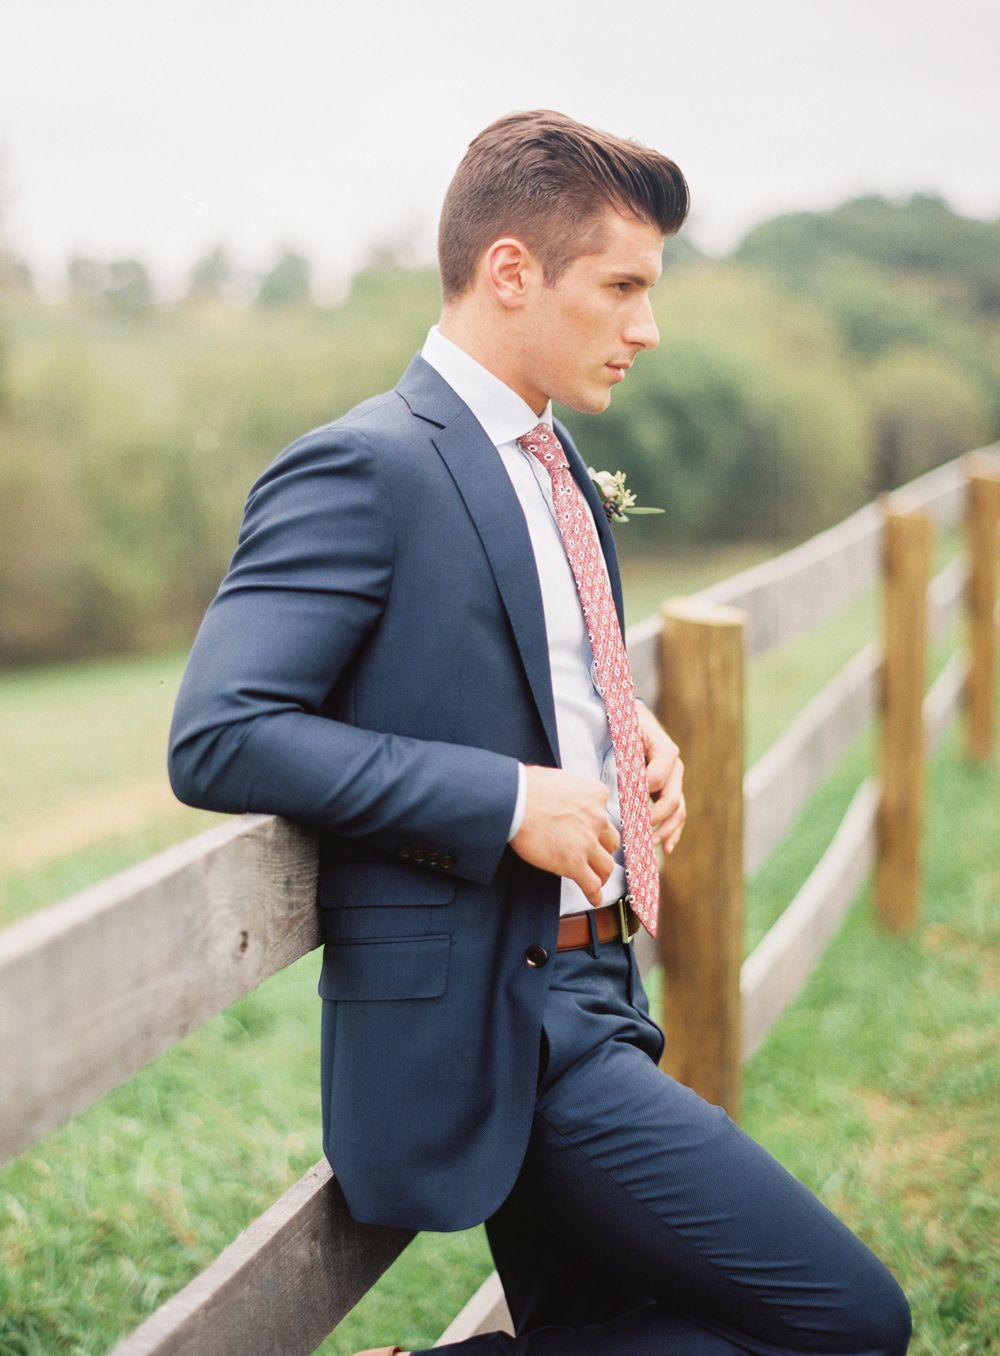 Groom Style Navy Blue Suit With Pink Patterned Tie Image By Jodi Miller Photography Wedding